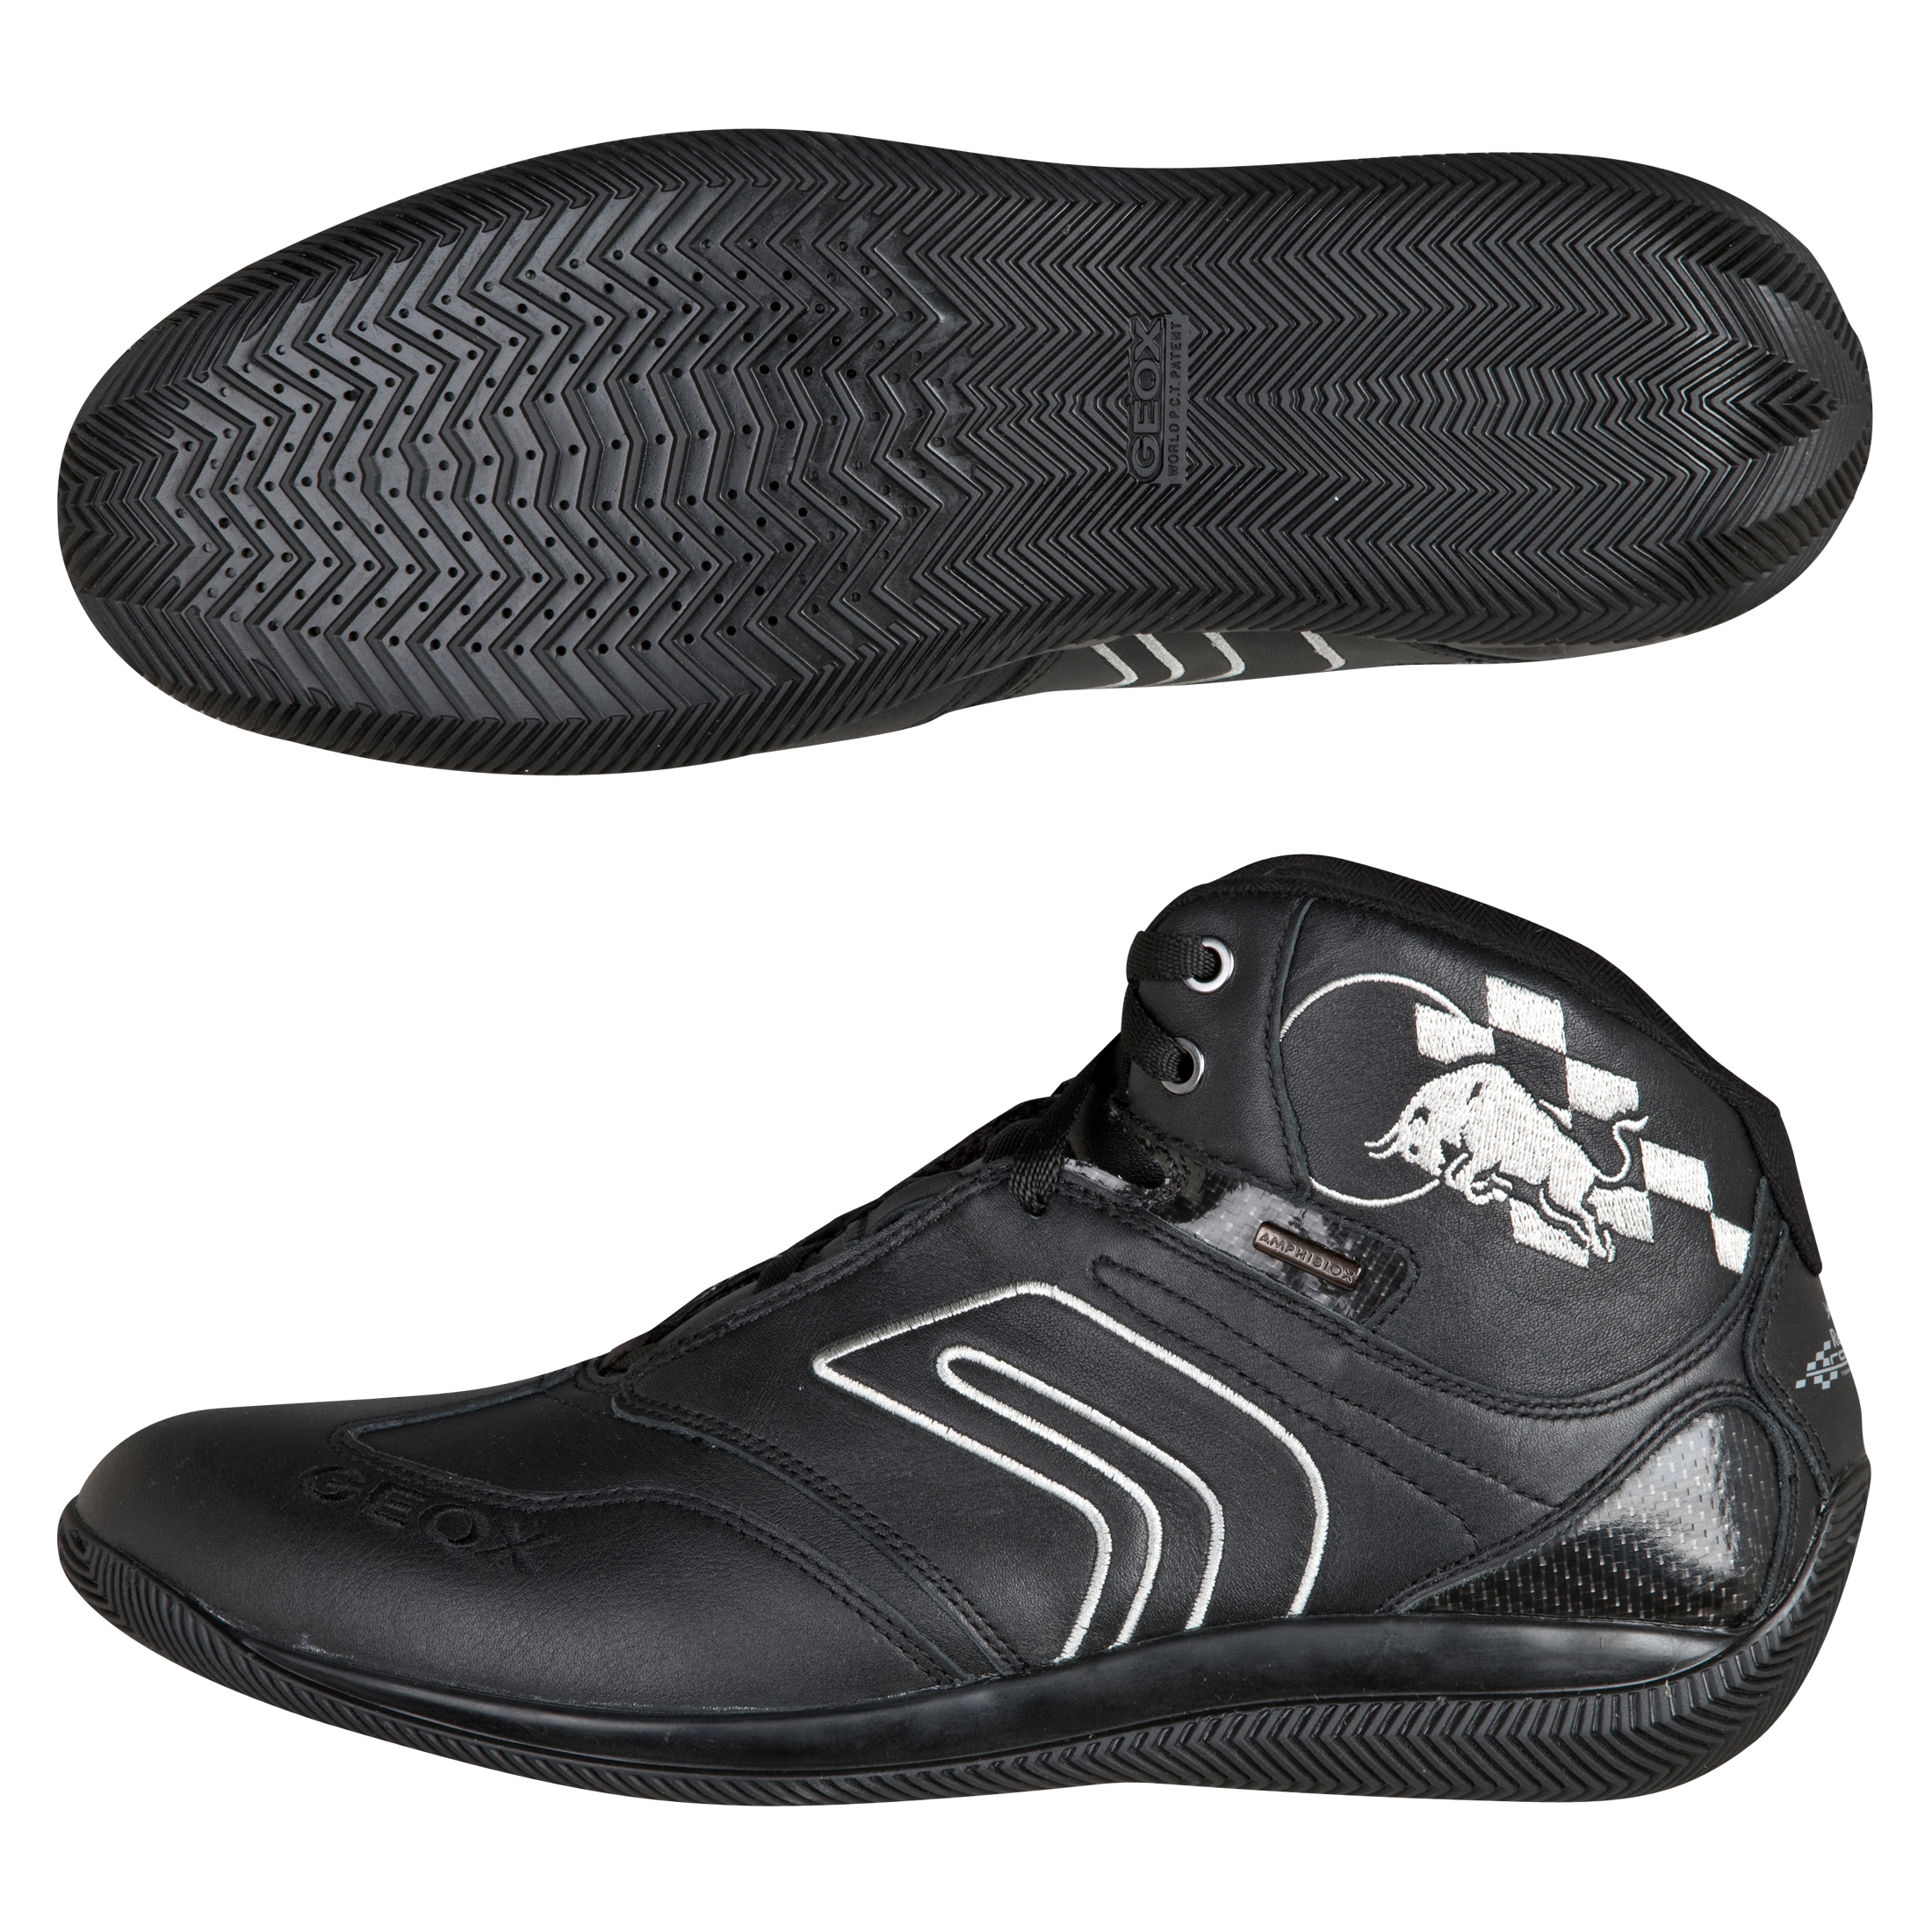 GEOX Red Bull Racing Strada Trainer Leather - Black